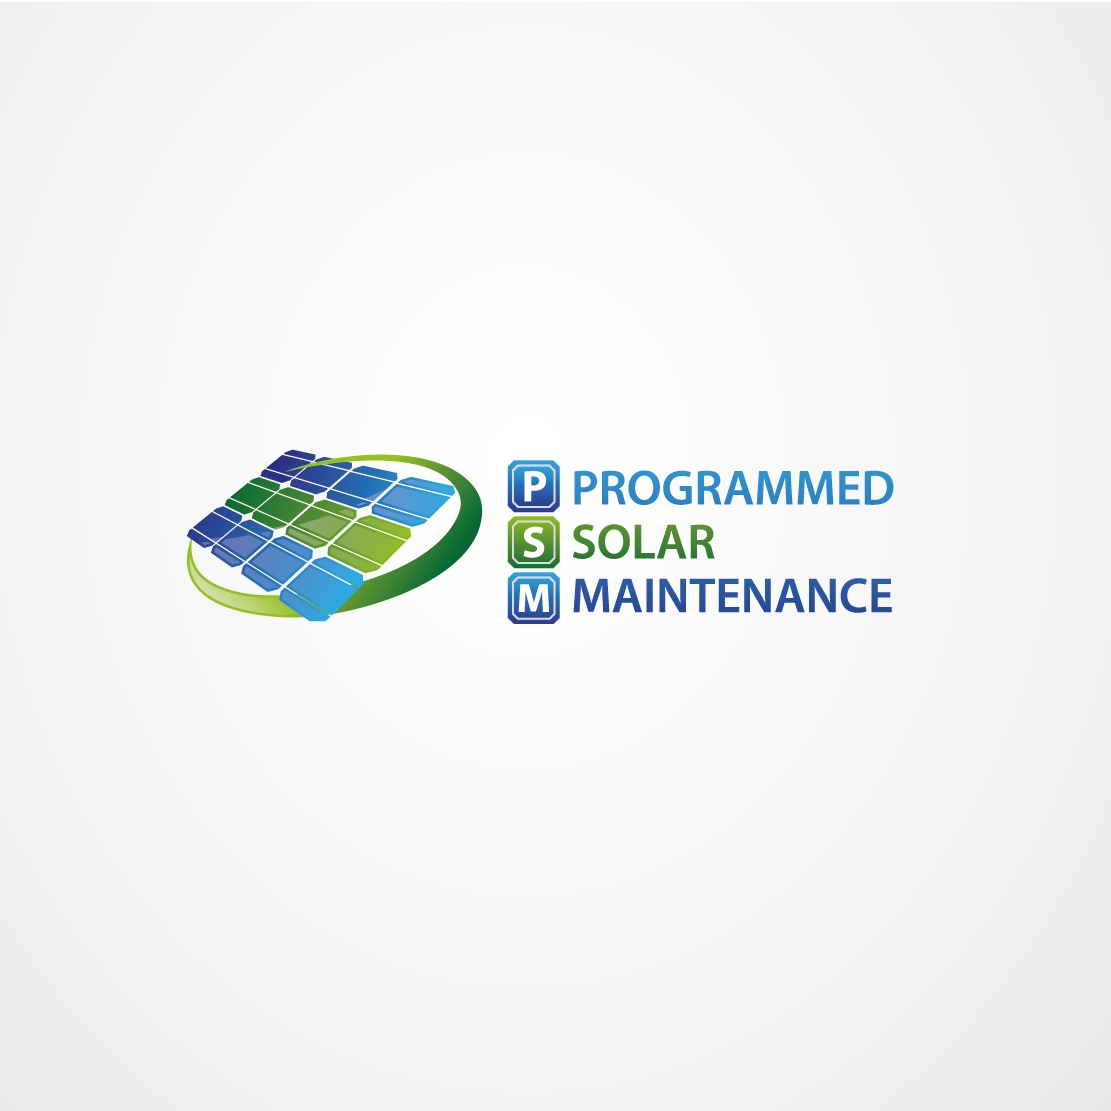 Help PSM - Programmed Solar Maintenance with a new logo